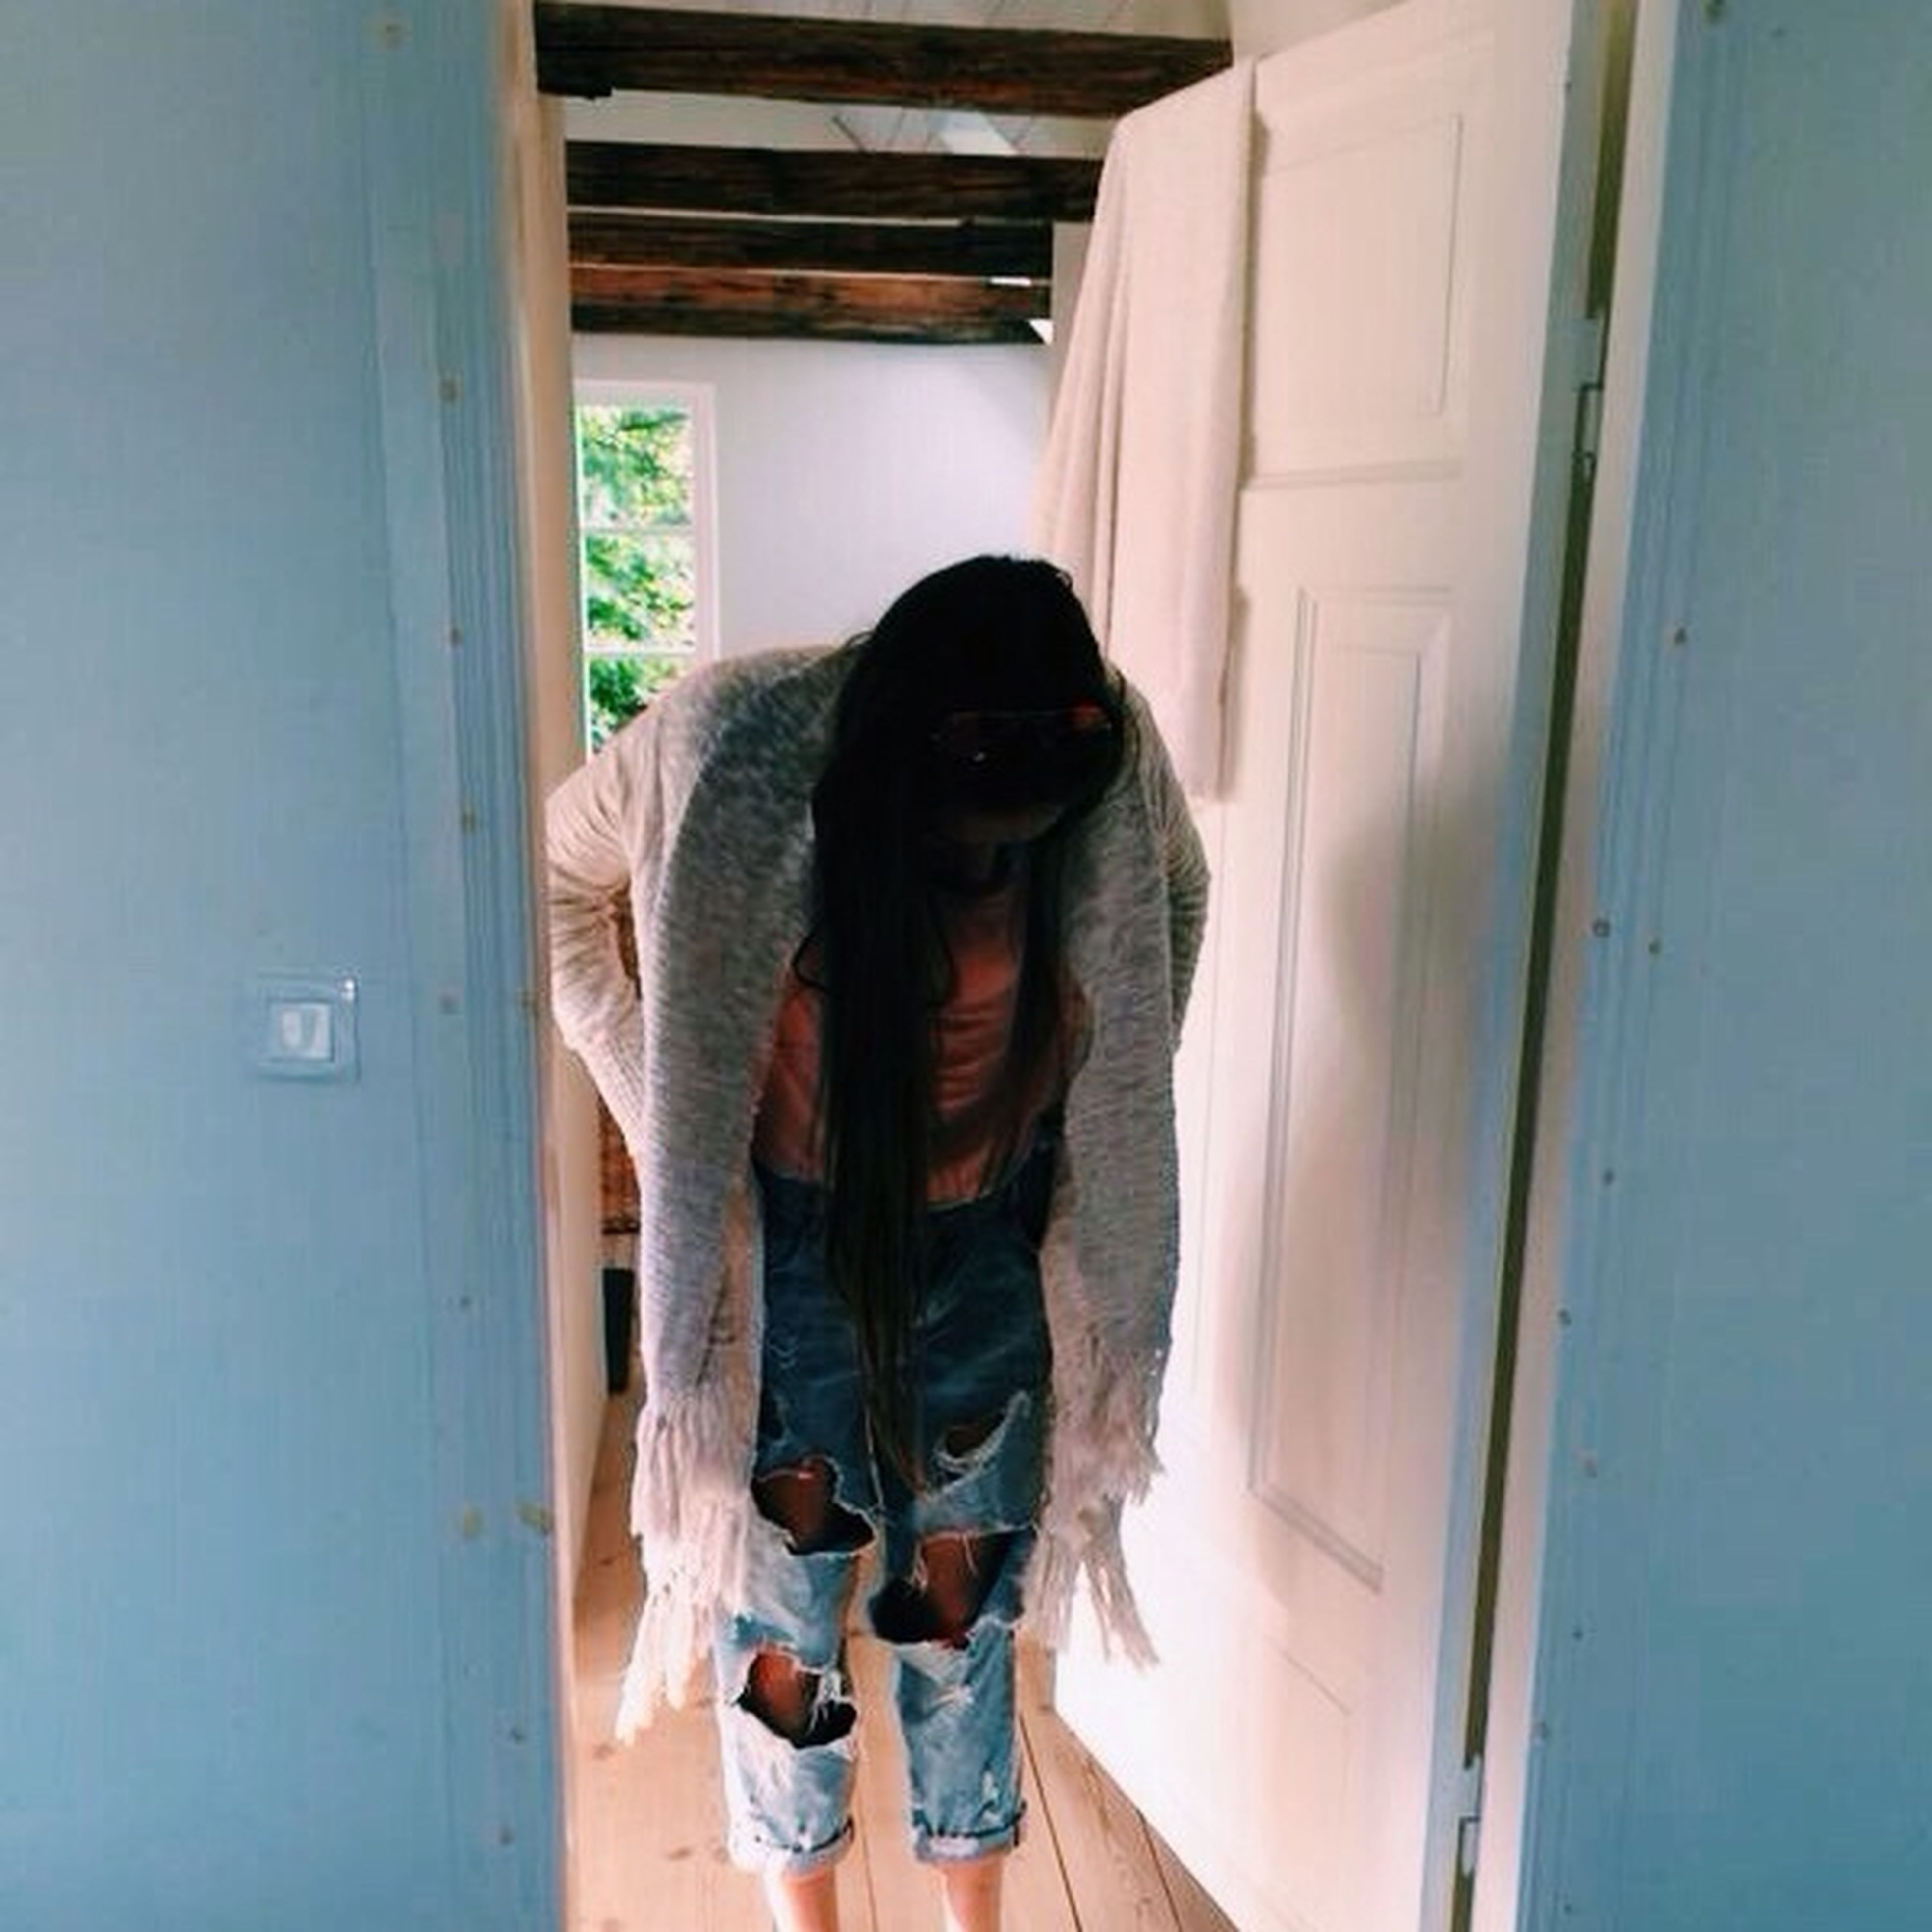 lifestyles, indoors, standing, leisure activity, casual clothing, rear view, young adult, person, full length, men, three quarter length, door, young women, window, side view, day, long hair, sitting